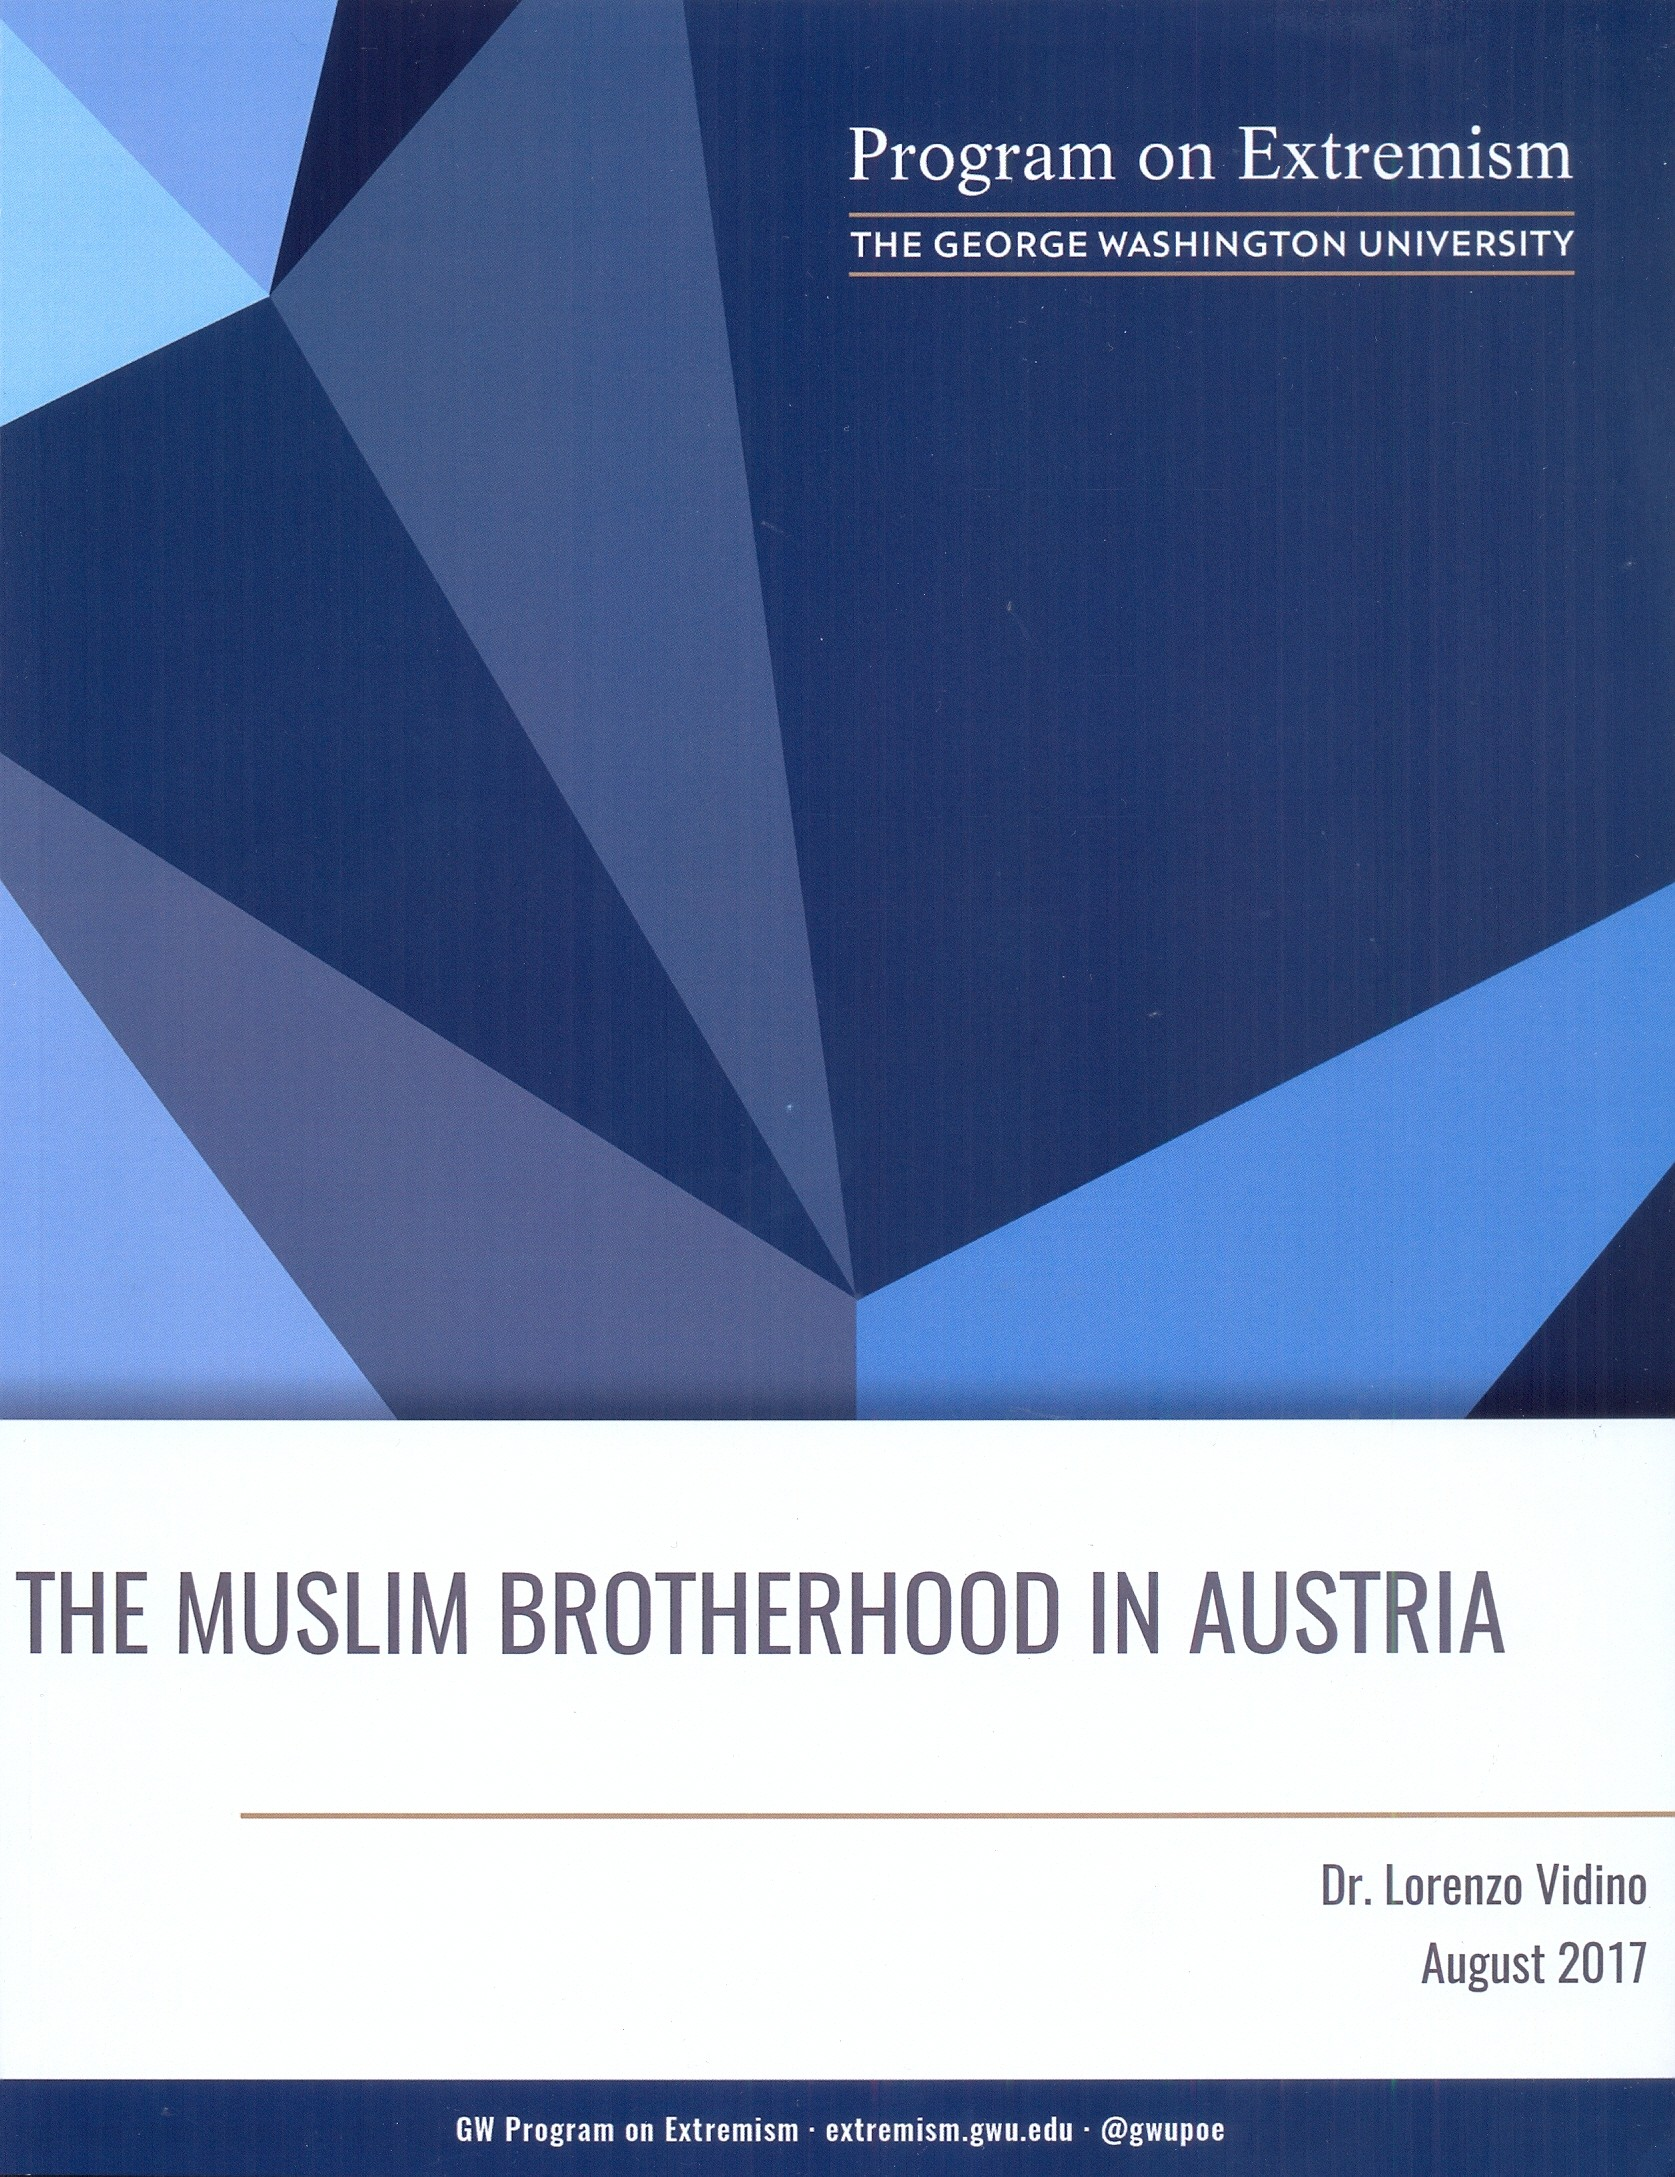 The muslim brotherhood in Austria